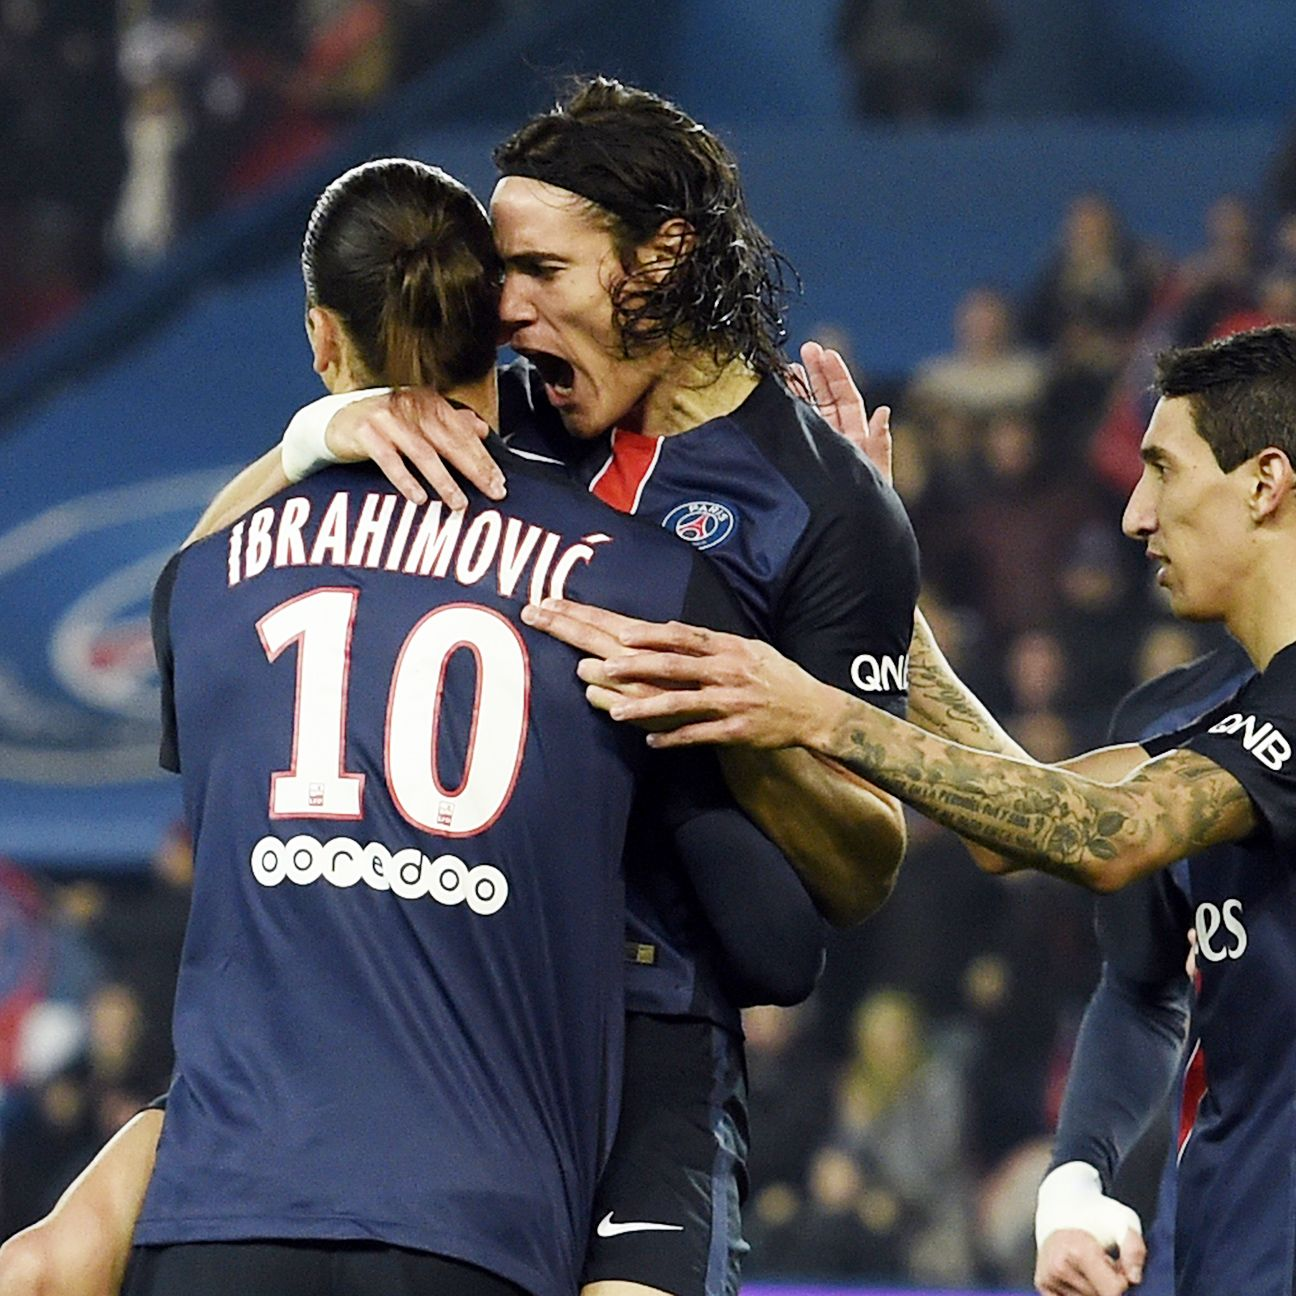 PSG hope to keep the good times rolling in the new year against Bastia.